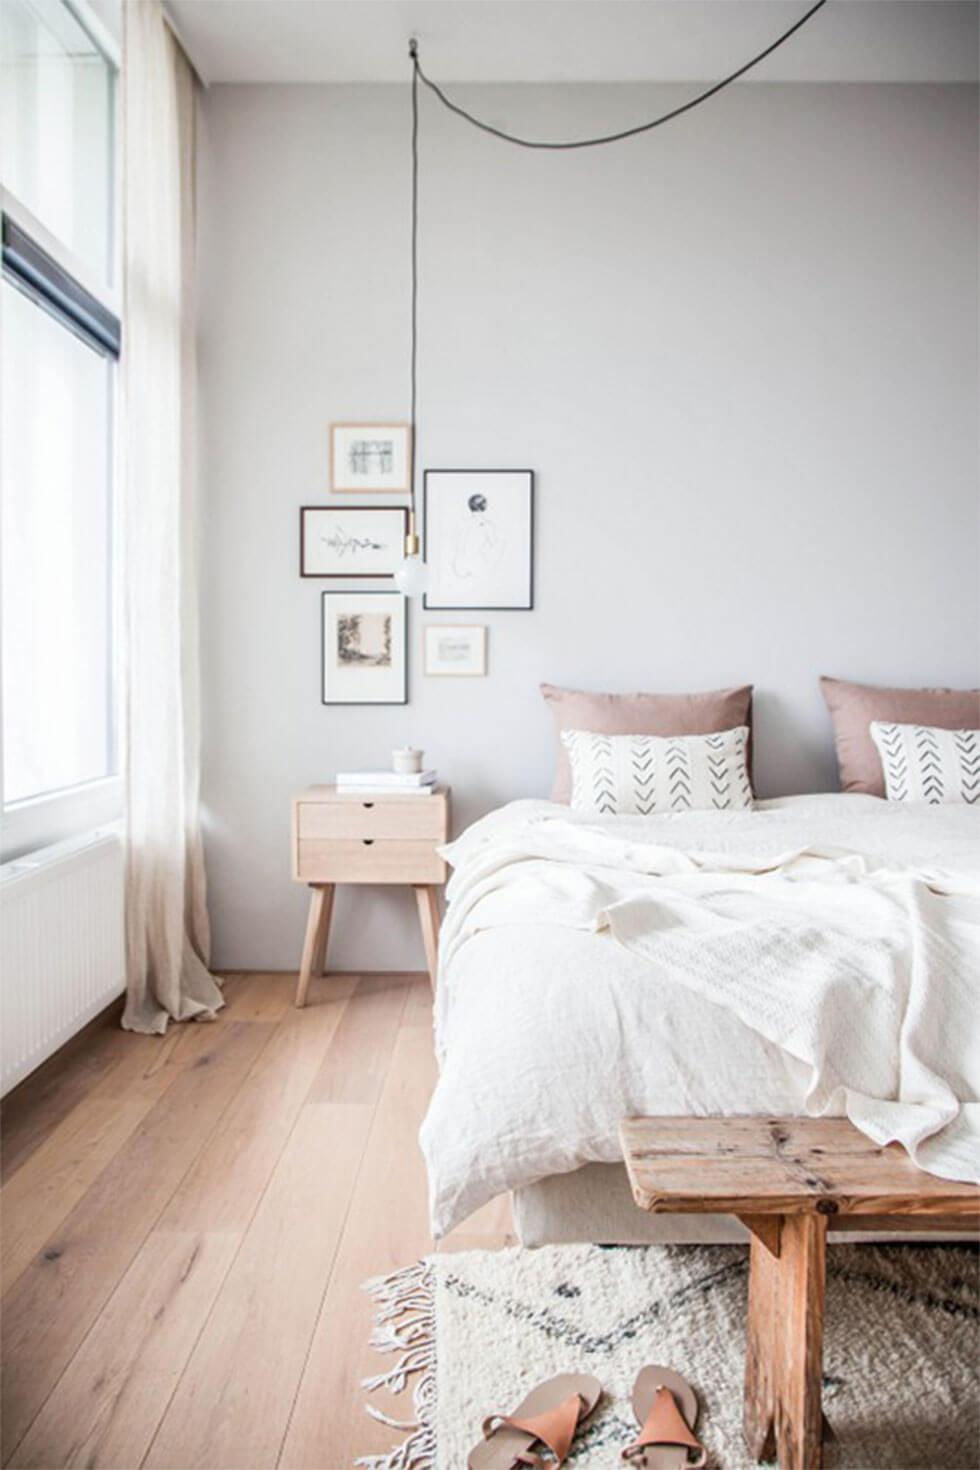 White bedroom in Scandinavian style with light wood furniture.